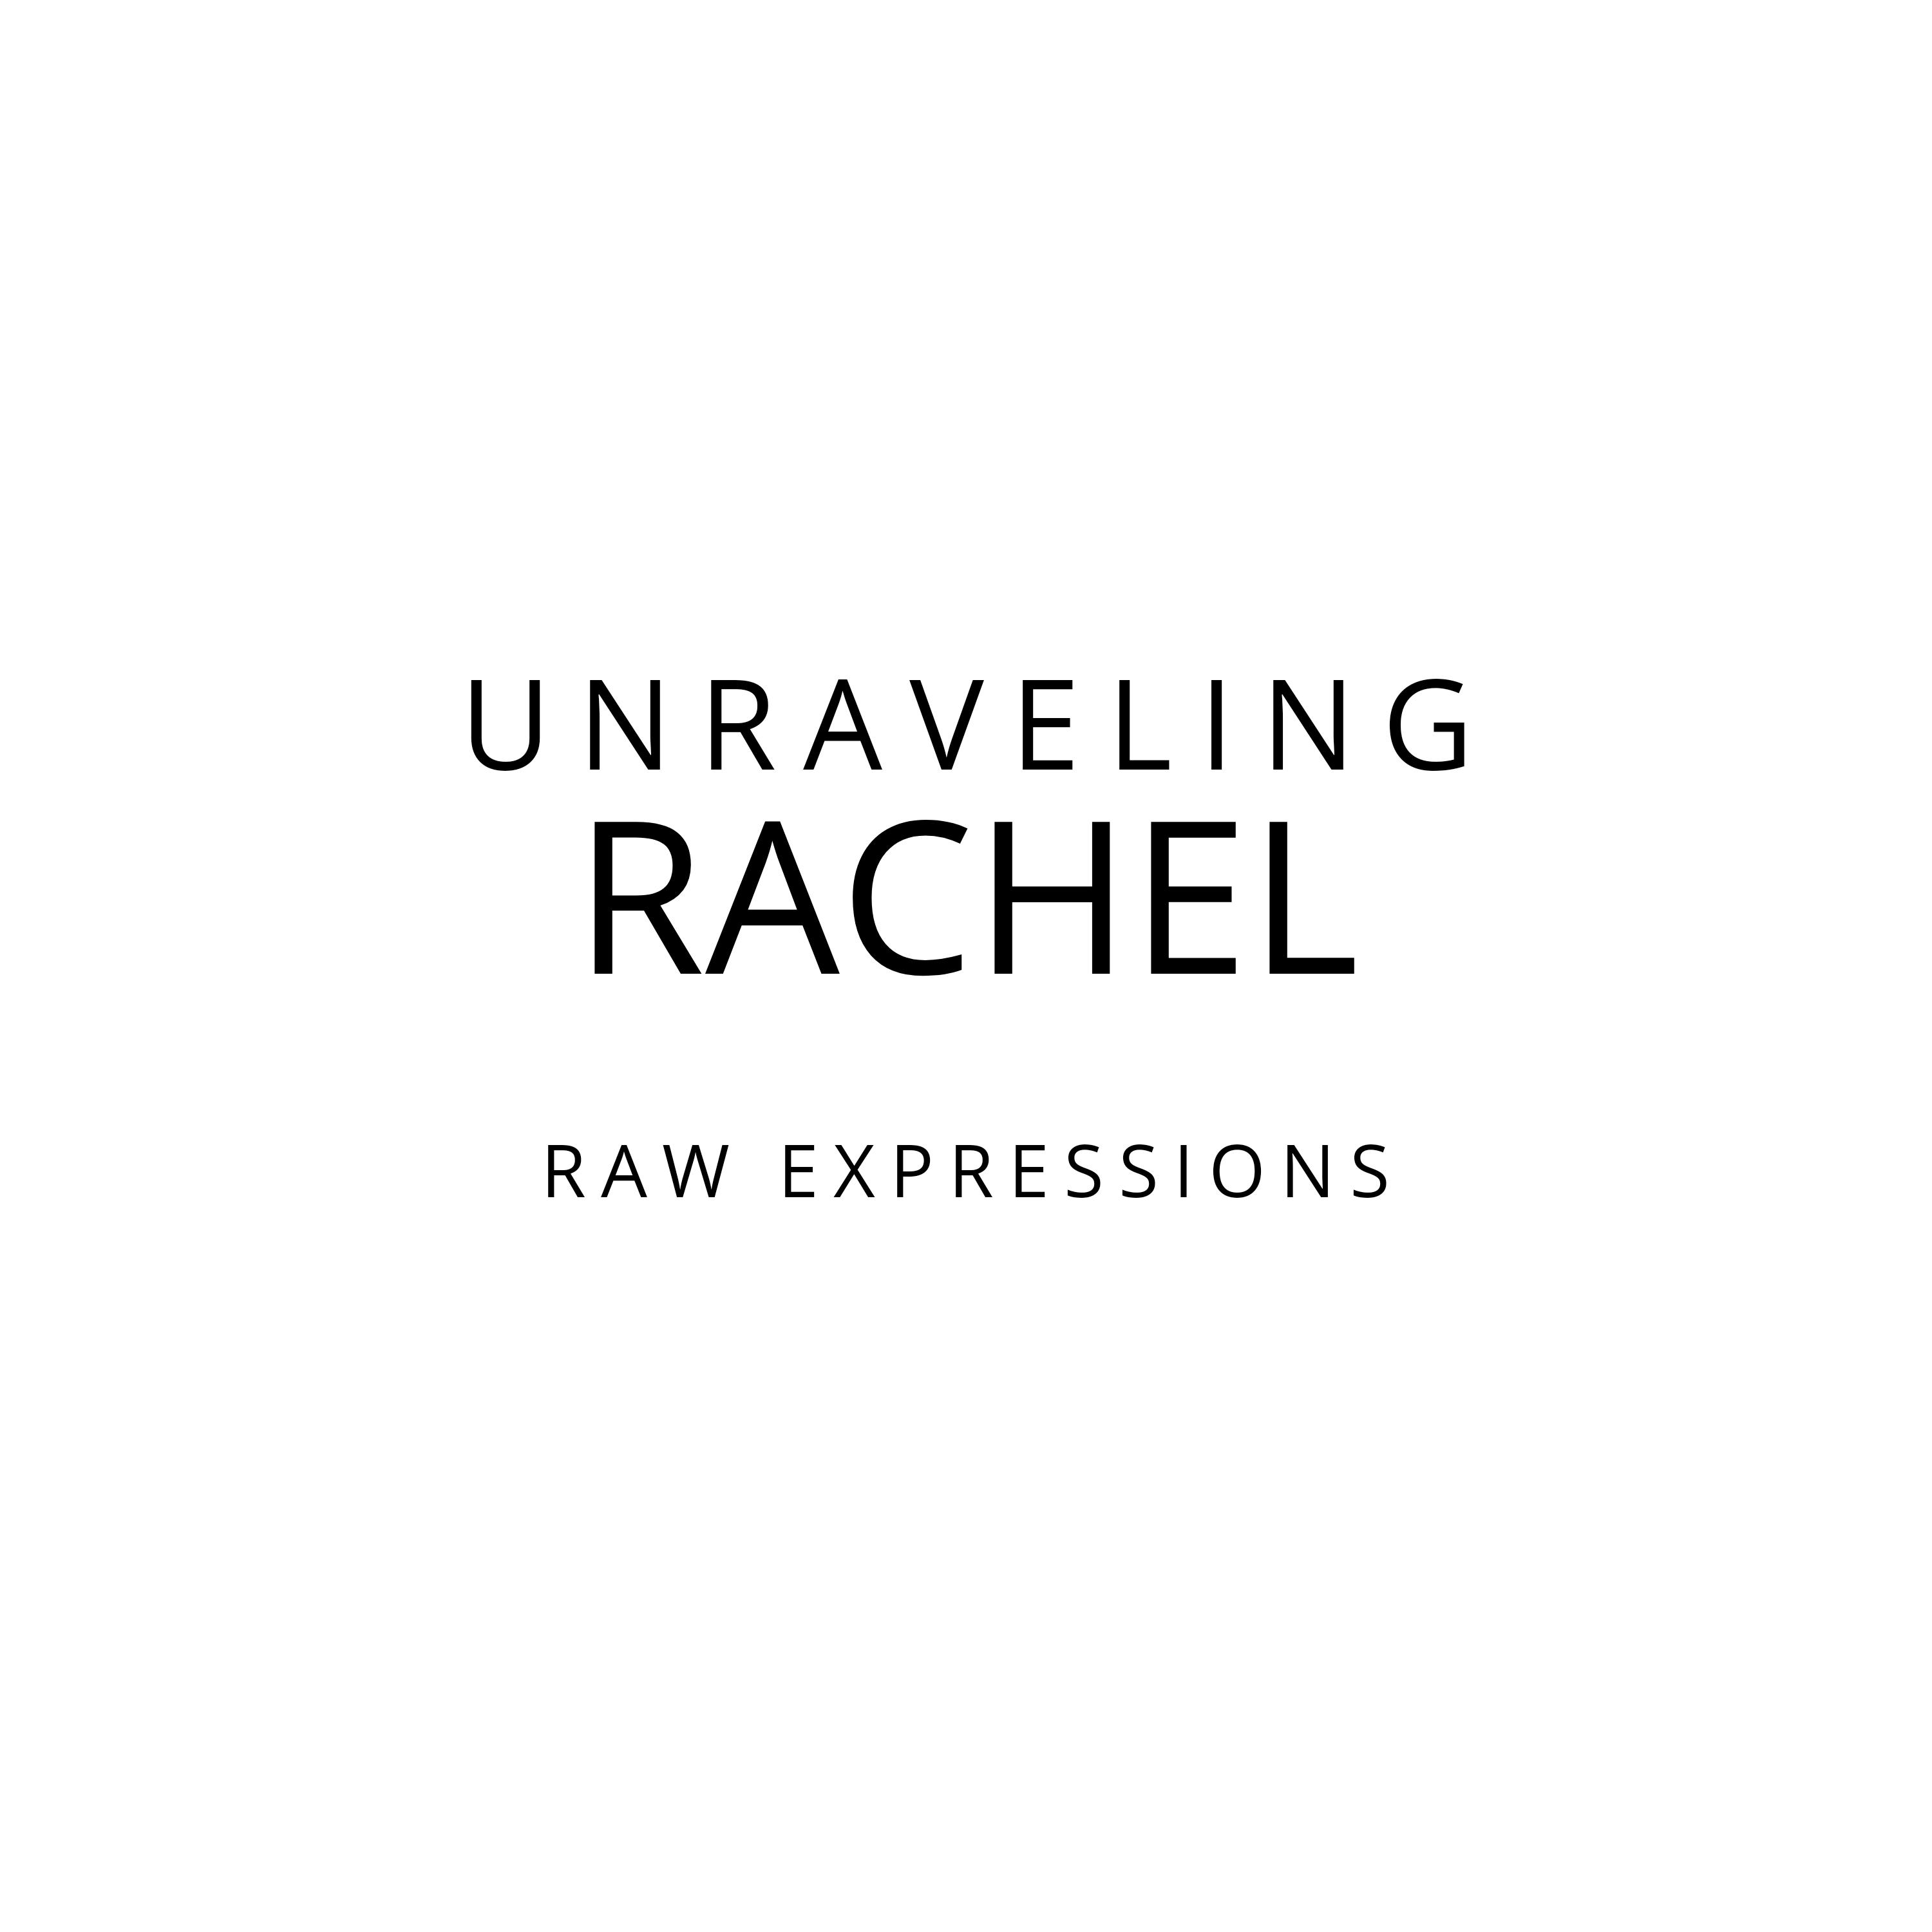 Artwork for Raw Expressions in Unraveling